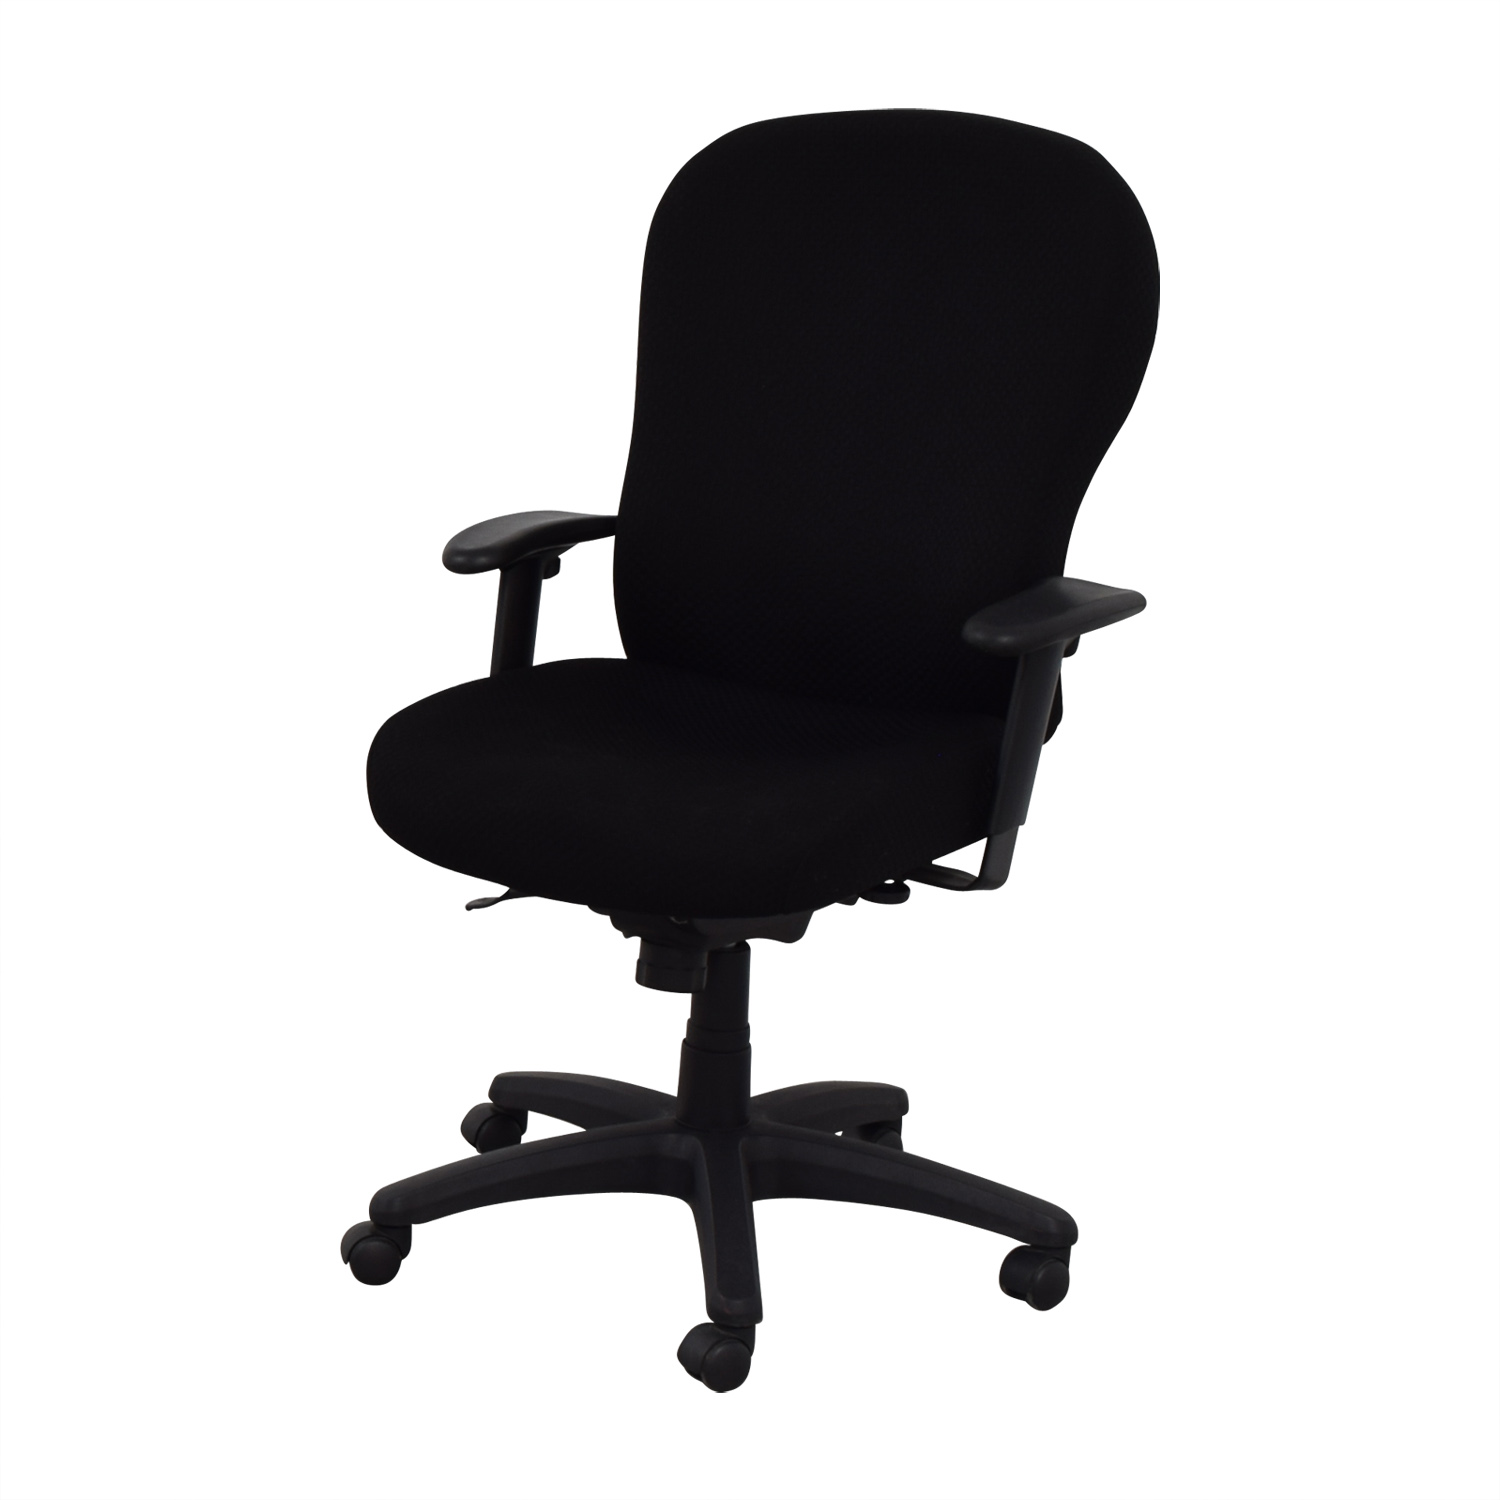 Tempur Pedic Office Chair 85 Off Tempur Pedic Tempur Pedic Desk Chair Chairs